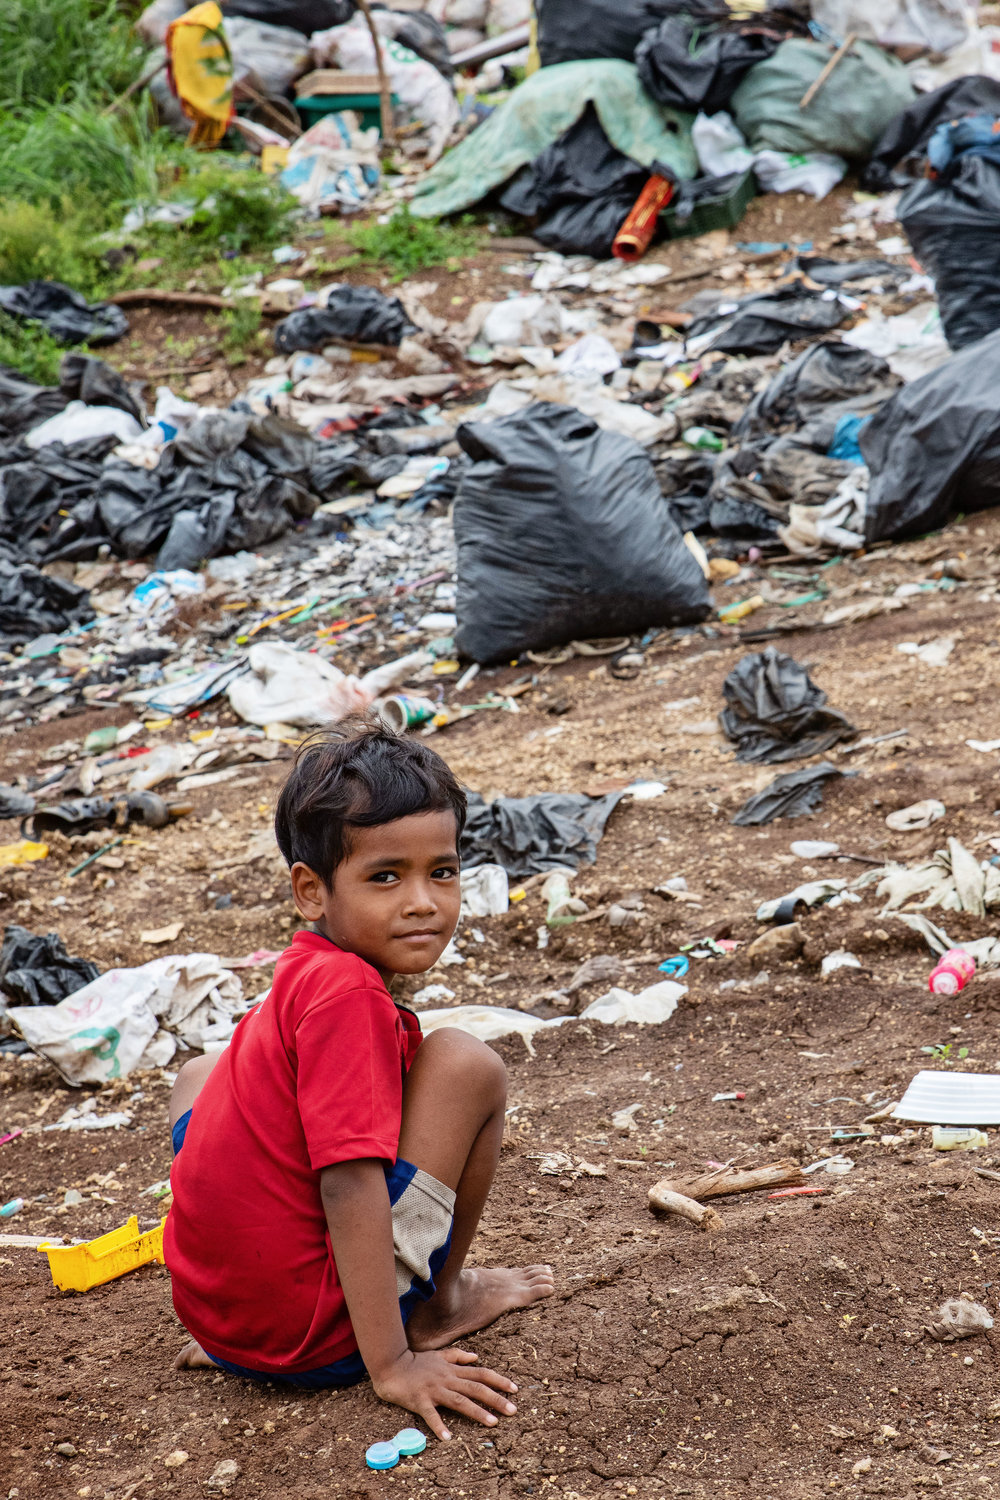 Kids live and play amongst the garbage every day.